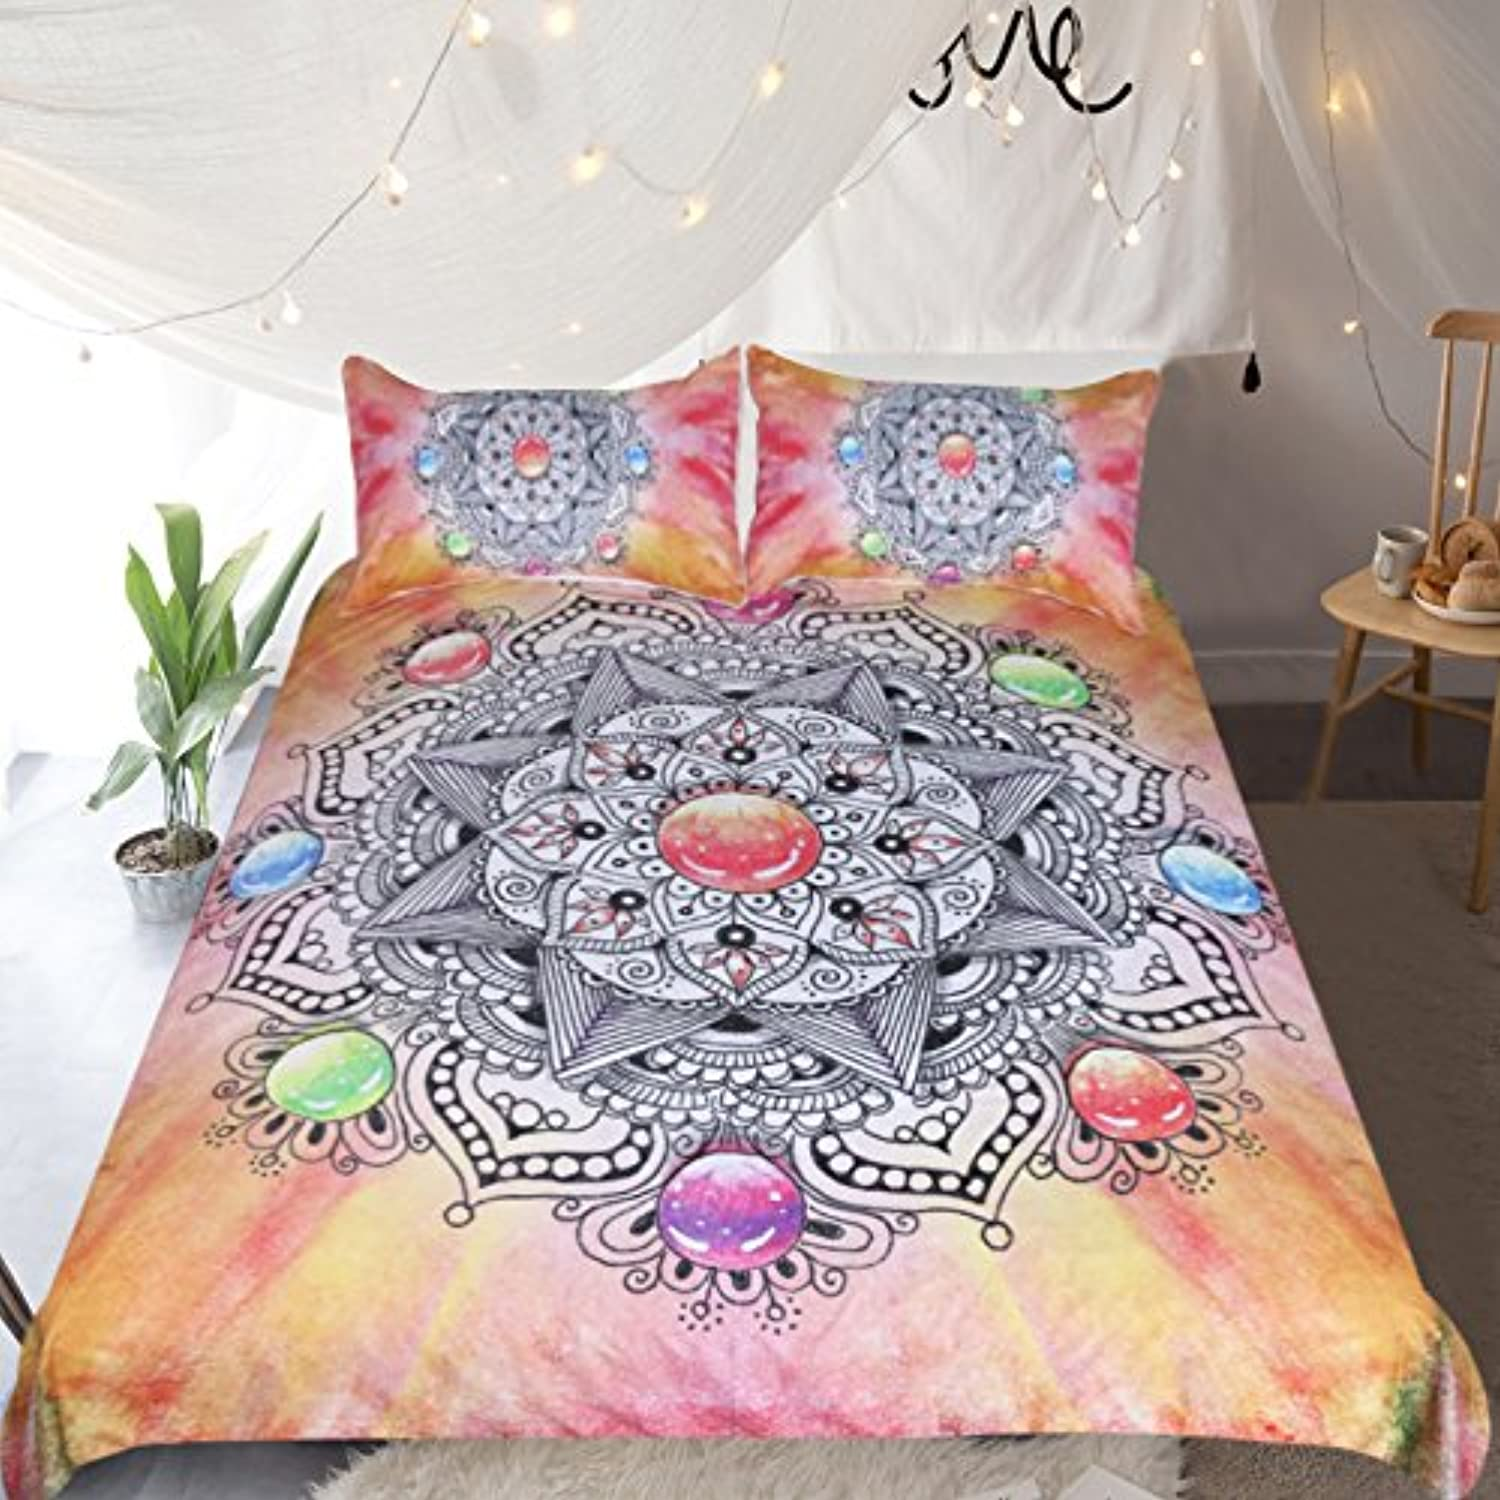 Sleepwish Pink and orange Tie Dye Bedding Girls Crystal Mandala Bedspread Flower Chakra Duvet Cover 3 Piece Indian Style Bed Covers (Full)